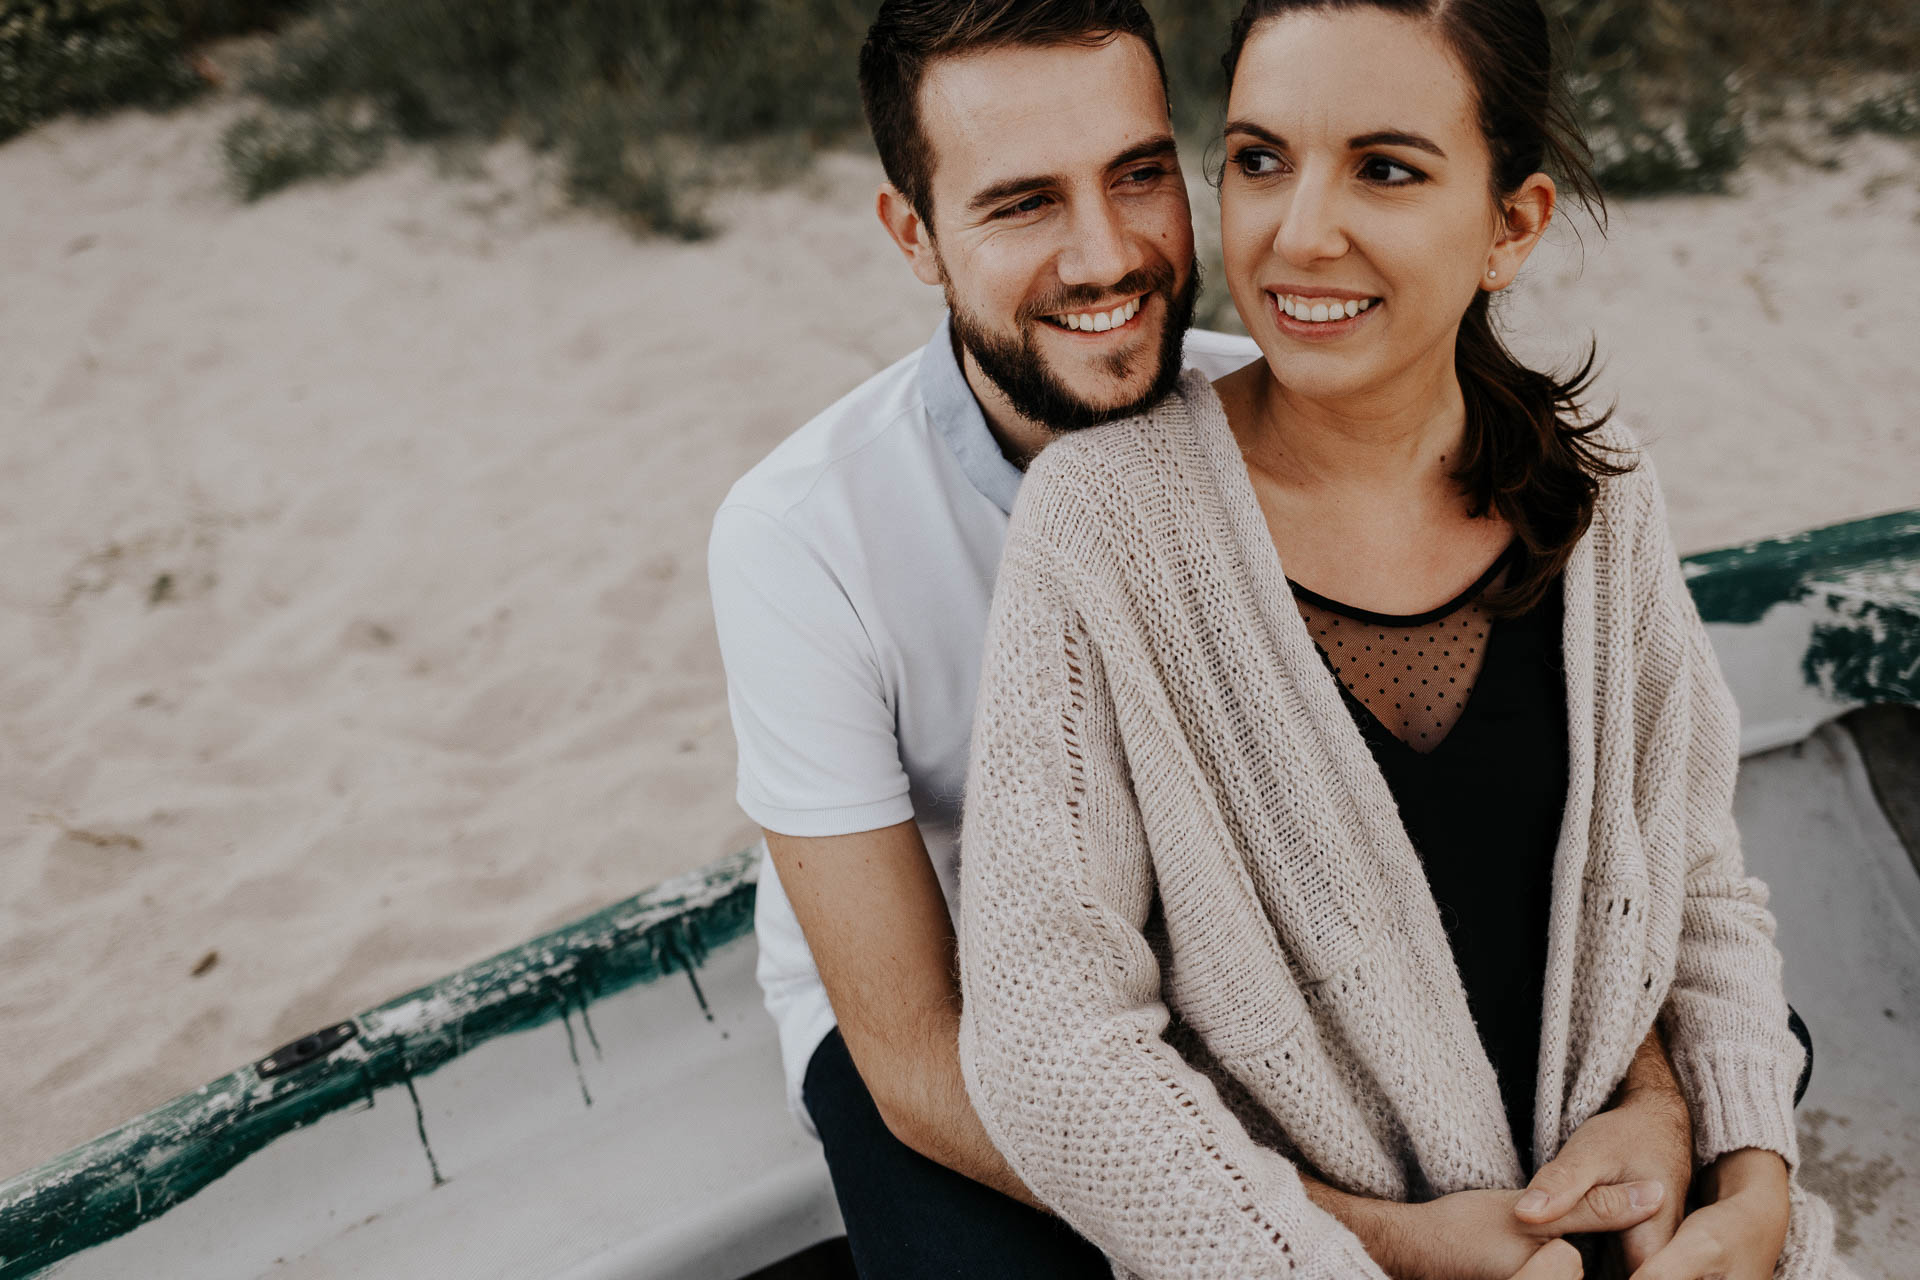 engagement_session_beach_france_flavie_nelly_french_photographer-10